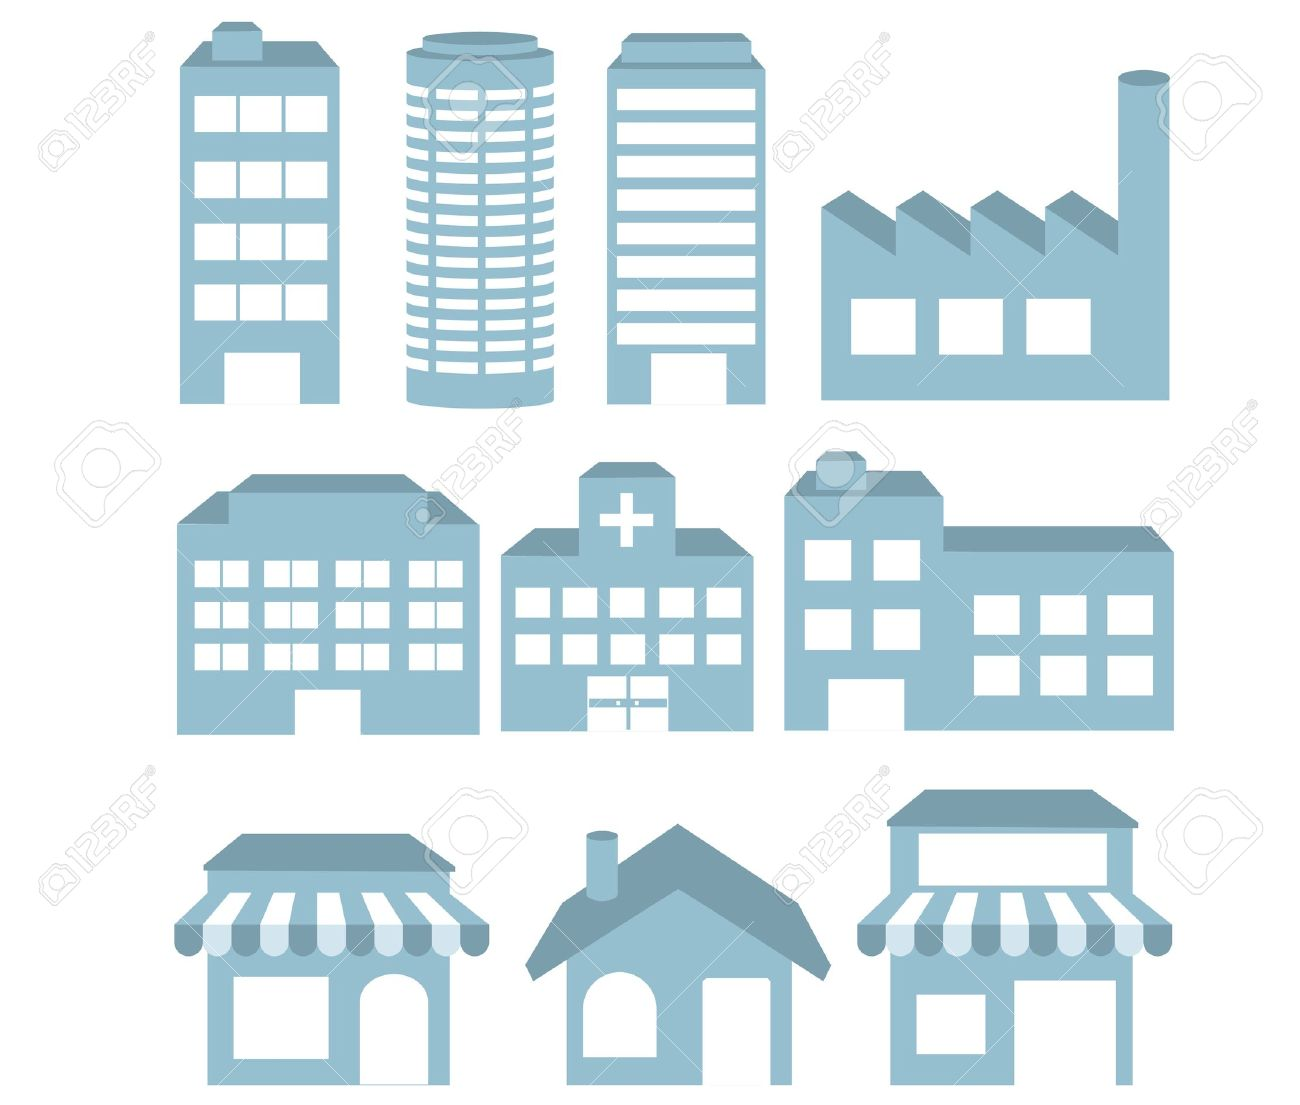 Illustration - Building icons set  Architectures image  vector Stock Vector - 12483169